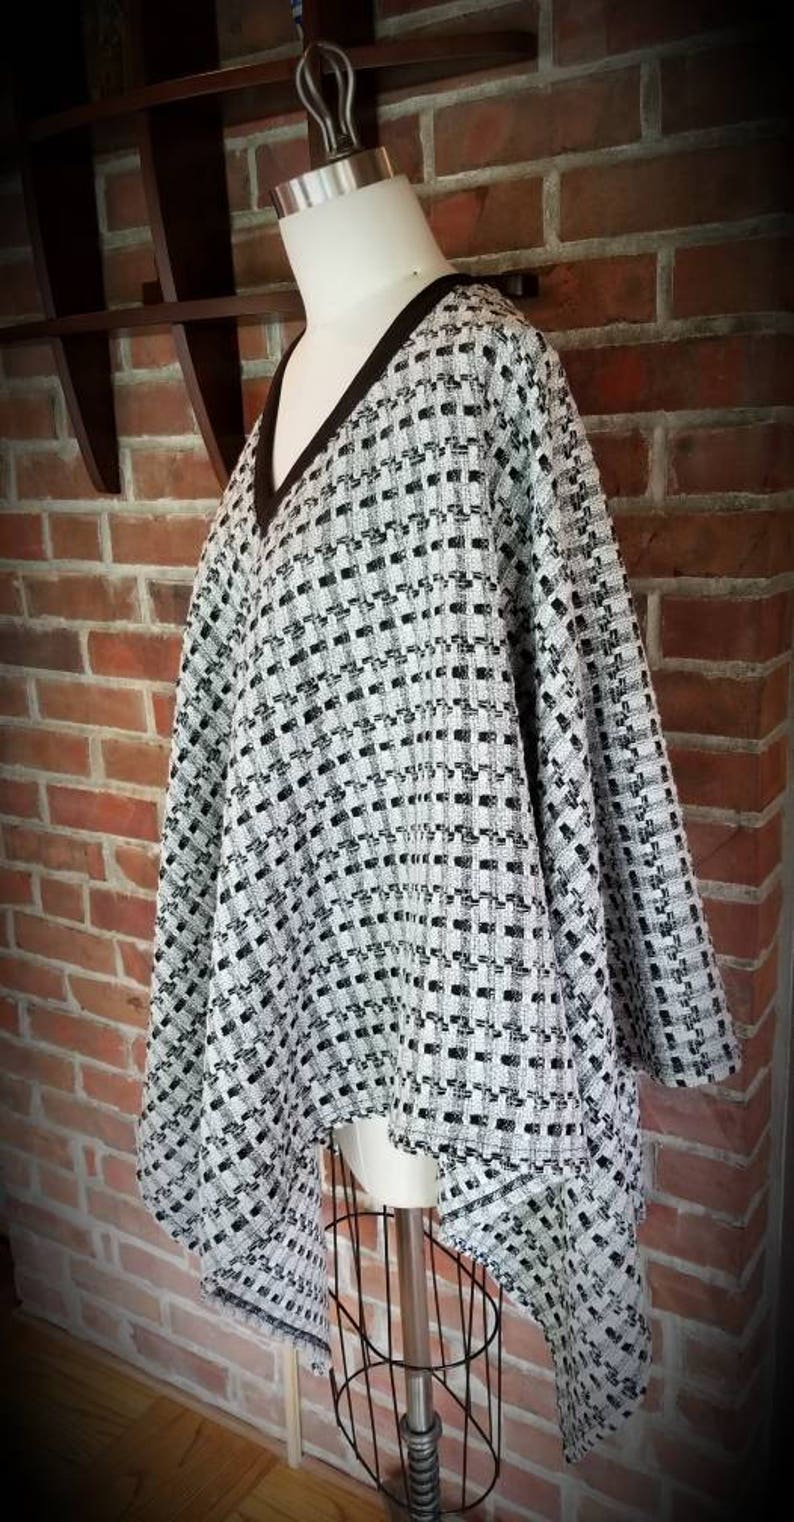 Custom Made by Shanna Britta Cowl Neck Poncho in Whisper White and Black Geometric Wool Knit